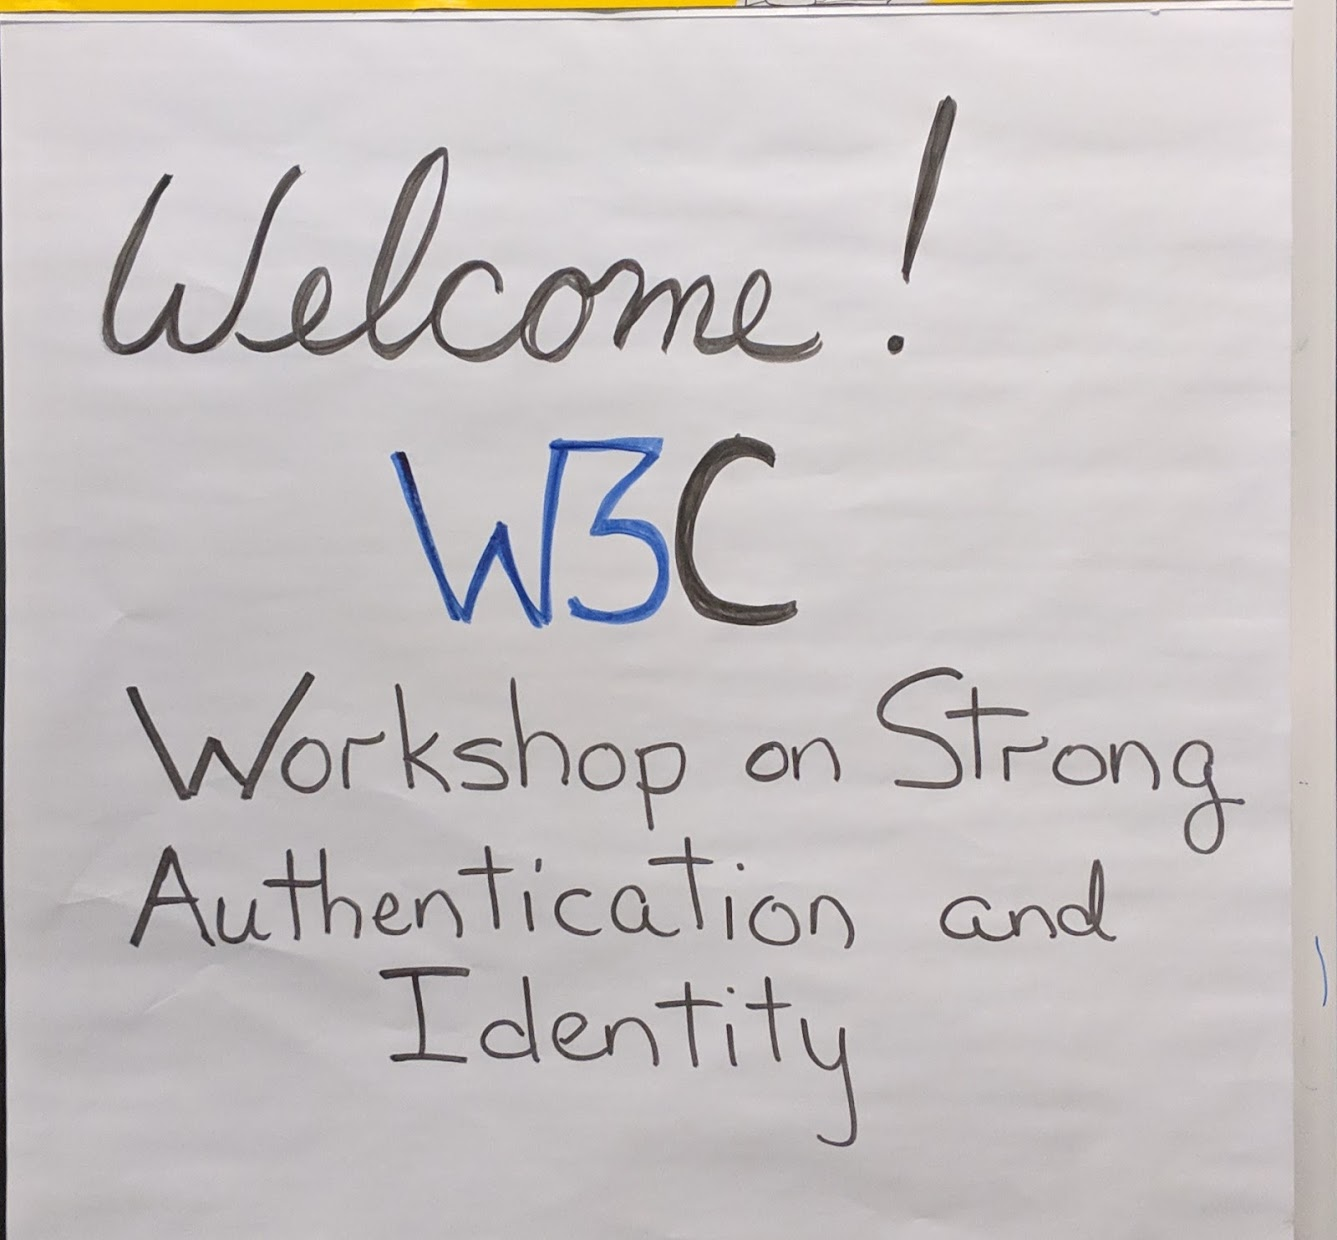 Welcome! W3C Workshop on Strong Authentication and Identity